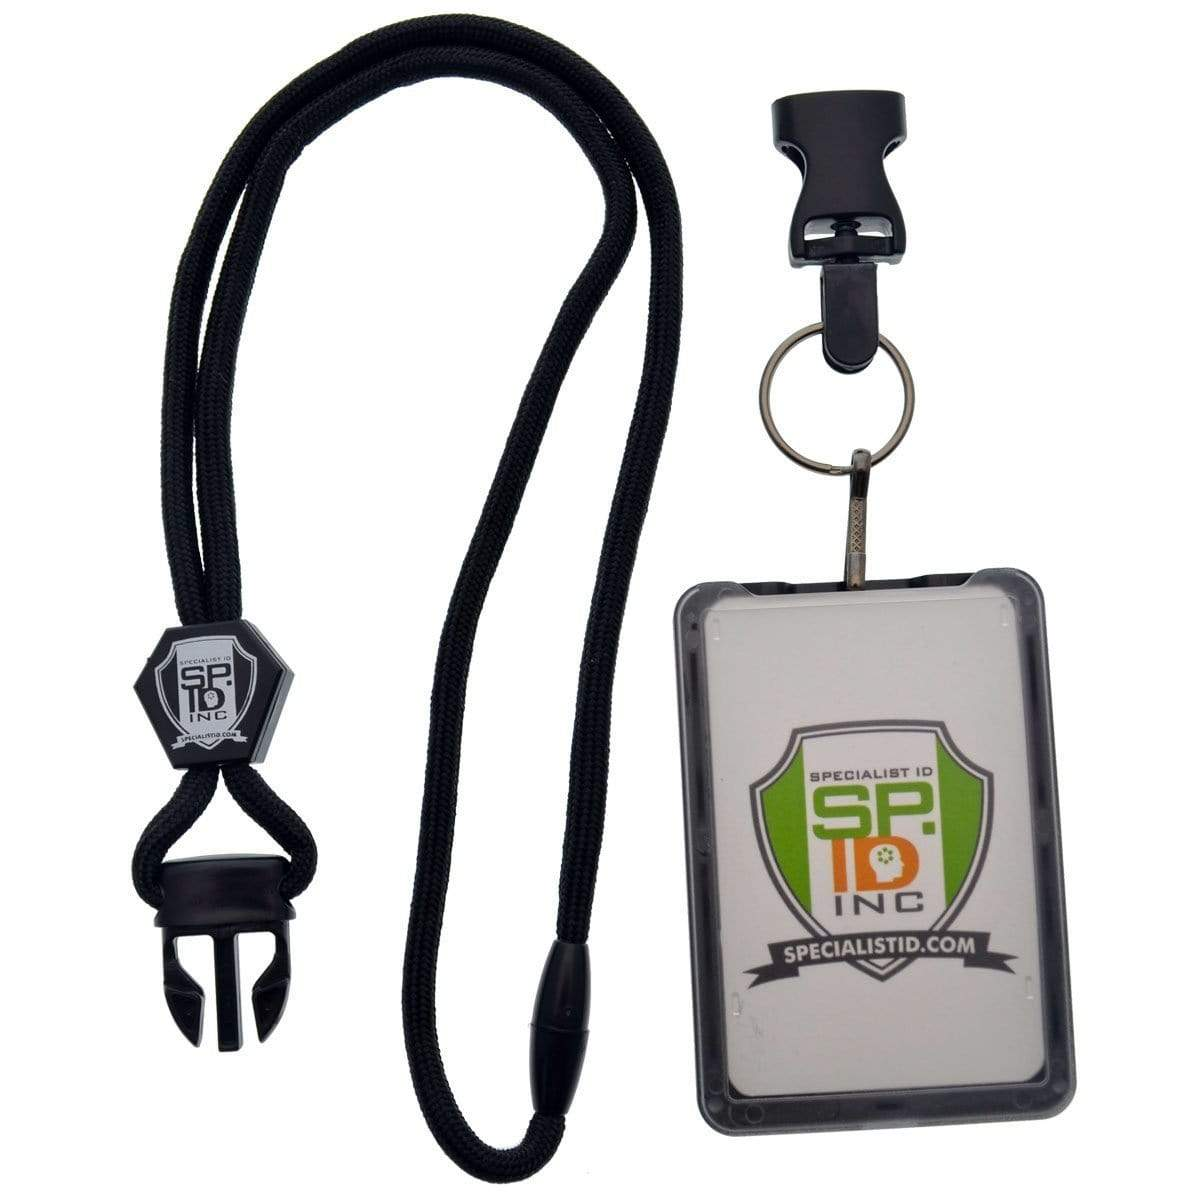 Top Loading THREE ID Card Badge Holder with Heavy Duty Lanyard w/ Detachable Metal Clip and Key Ring by Specialist ID